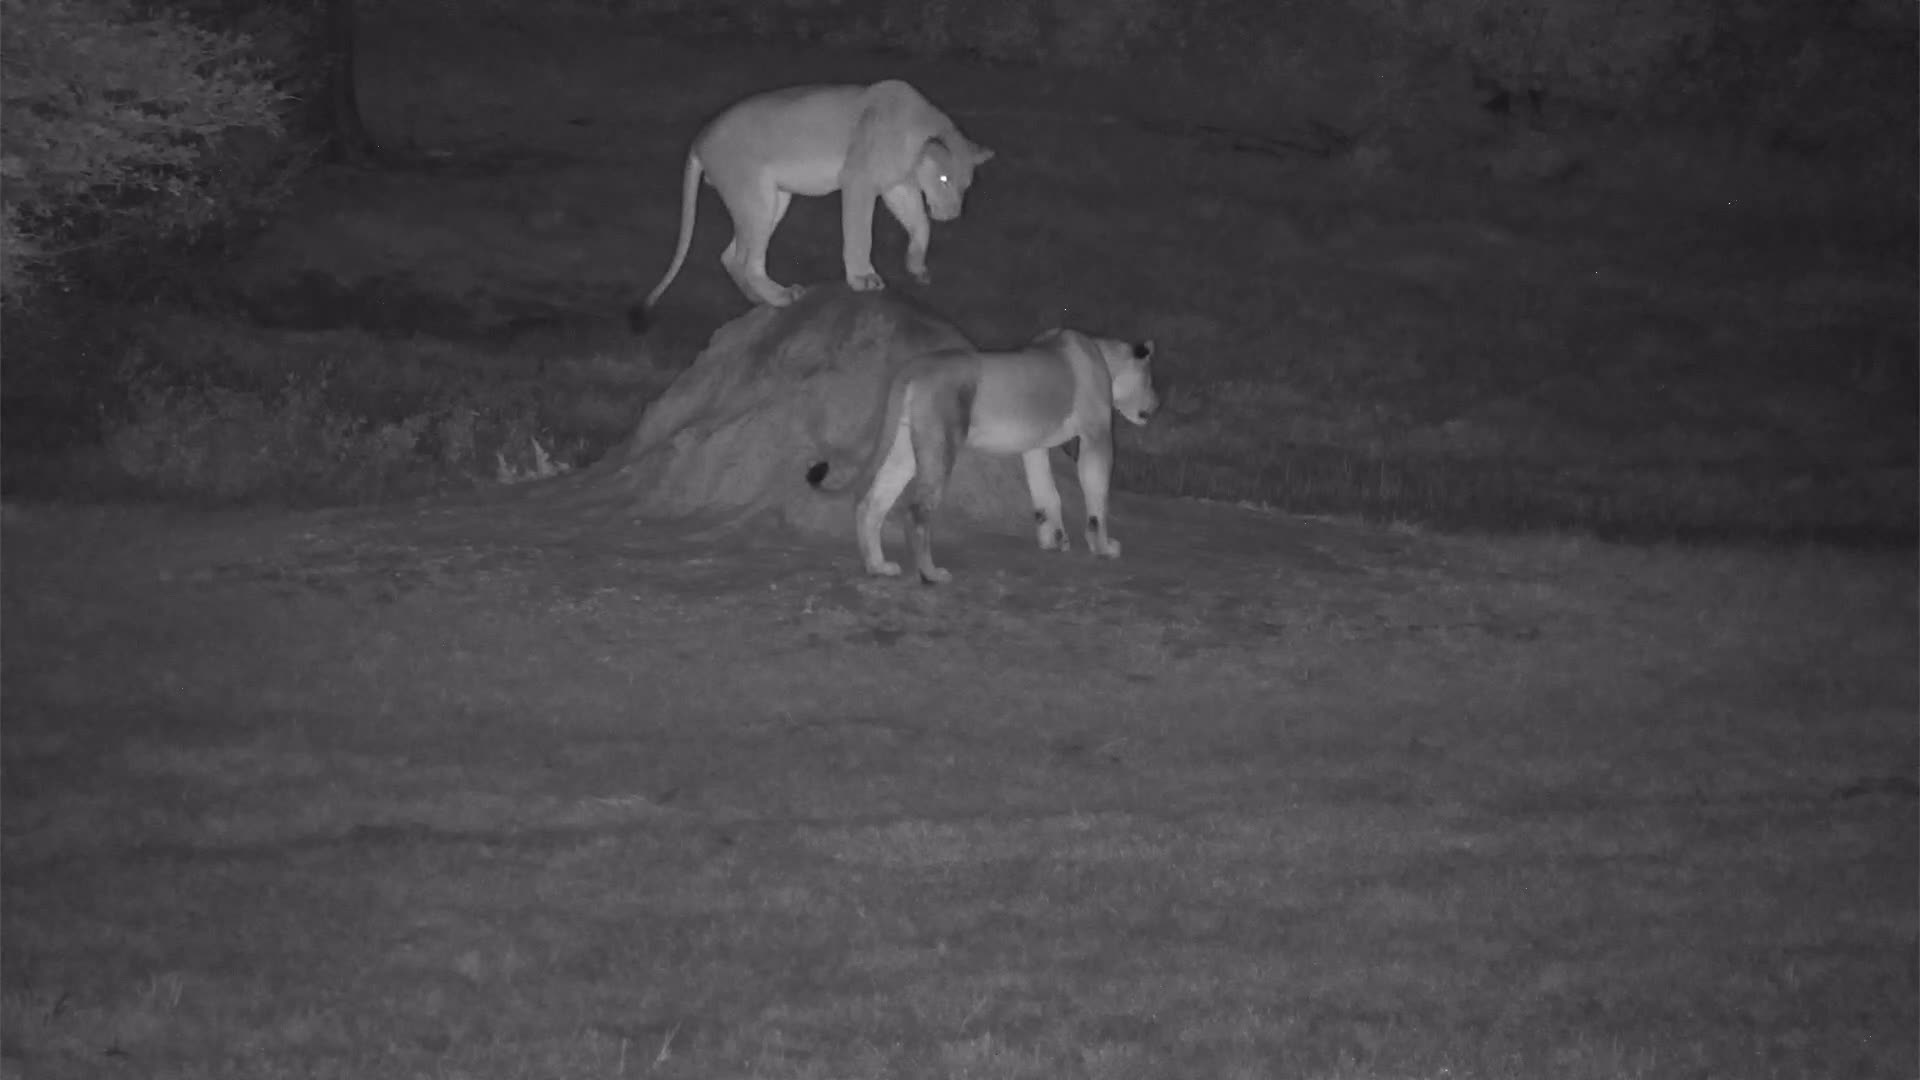 VIDEO: Lions - the young ones are very playful